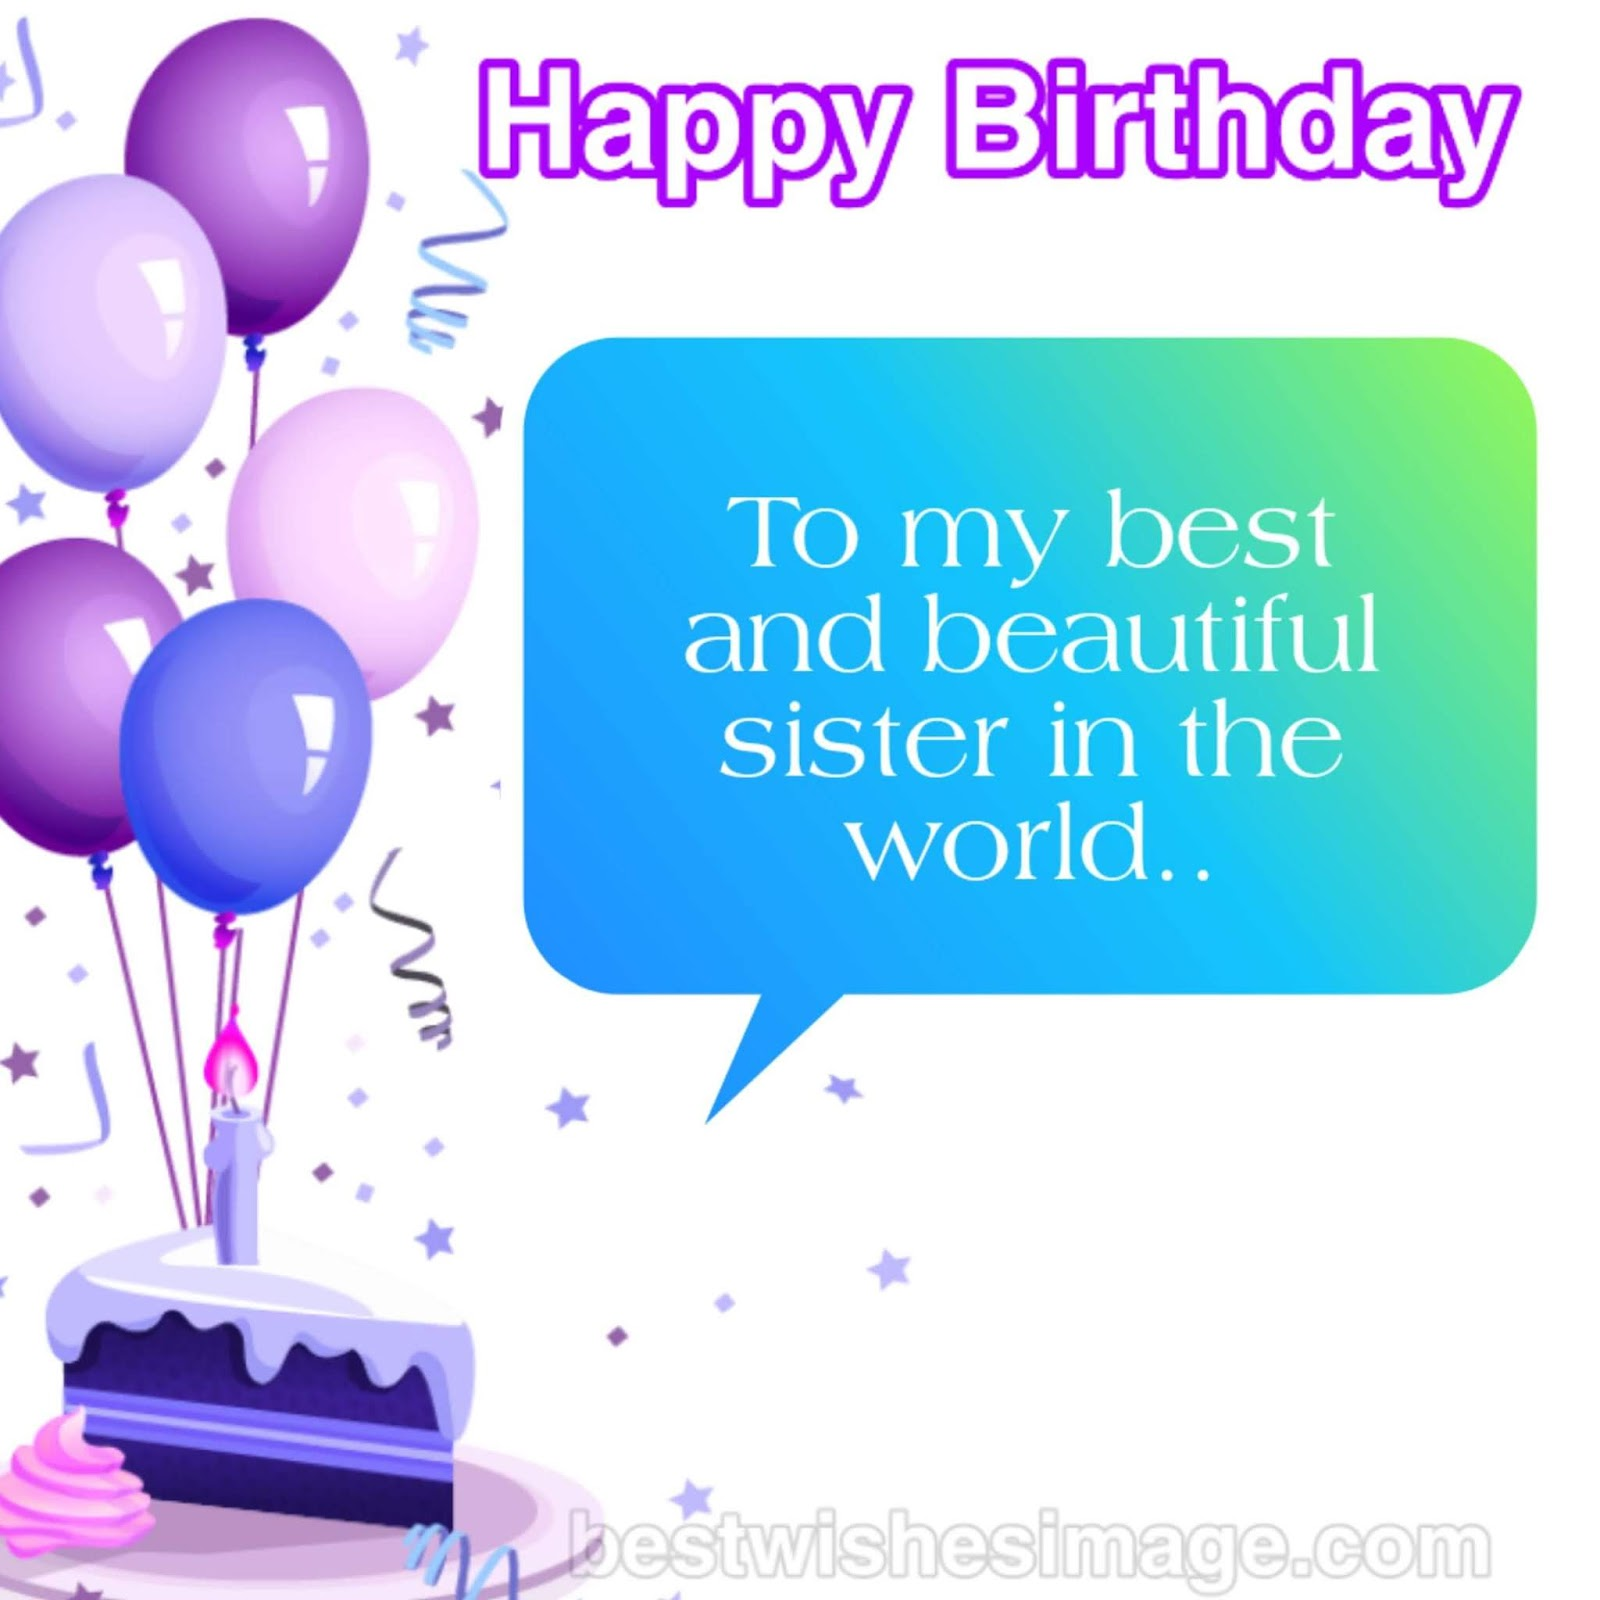 Happy Birthday Images For Elder Or Big Sister Full Hd Images Free Download Best Wishes Image